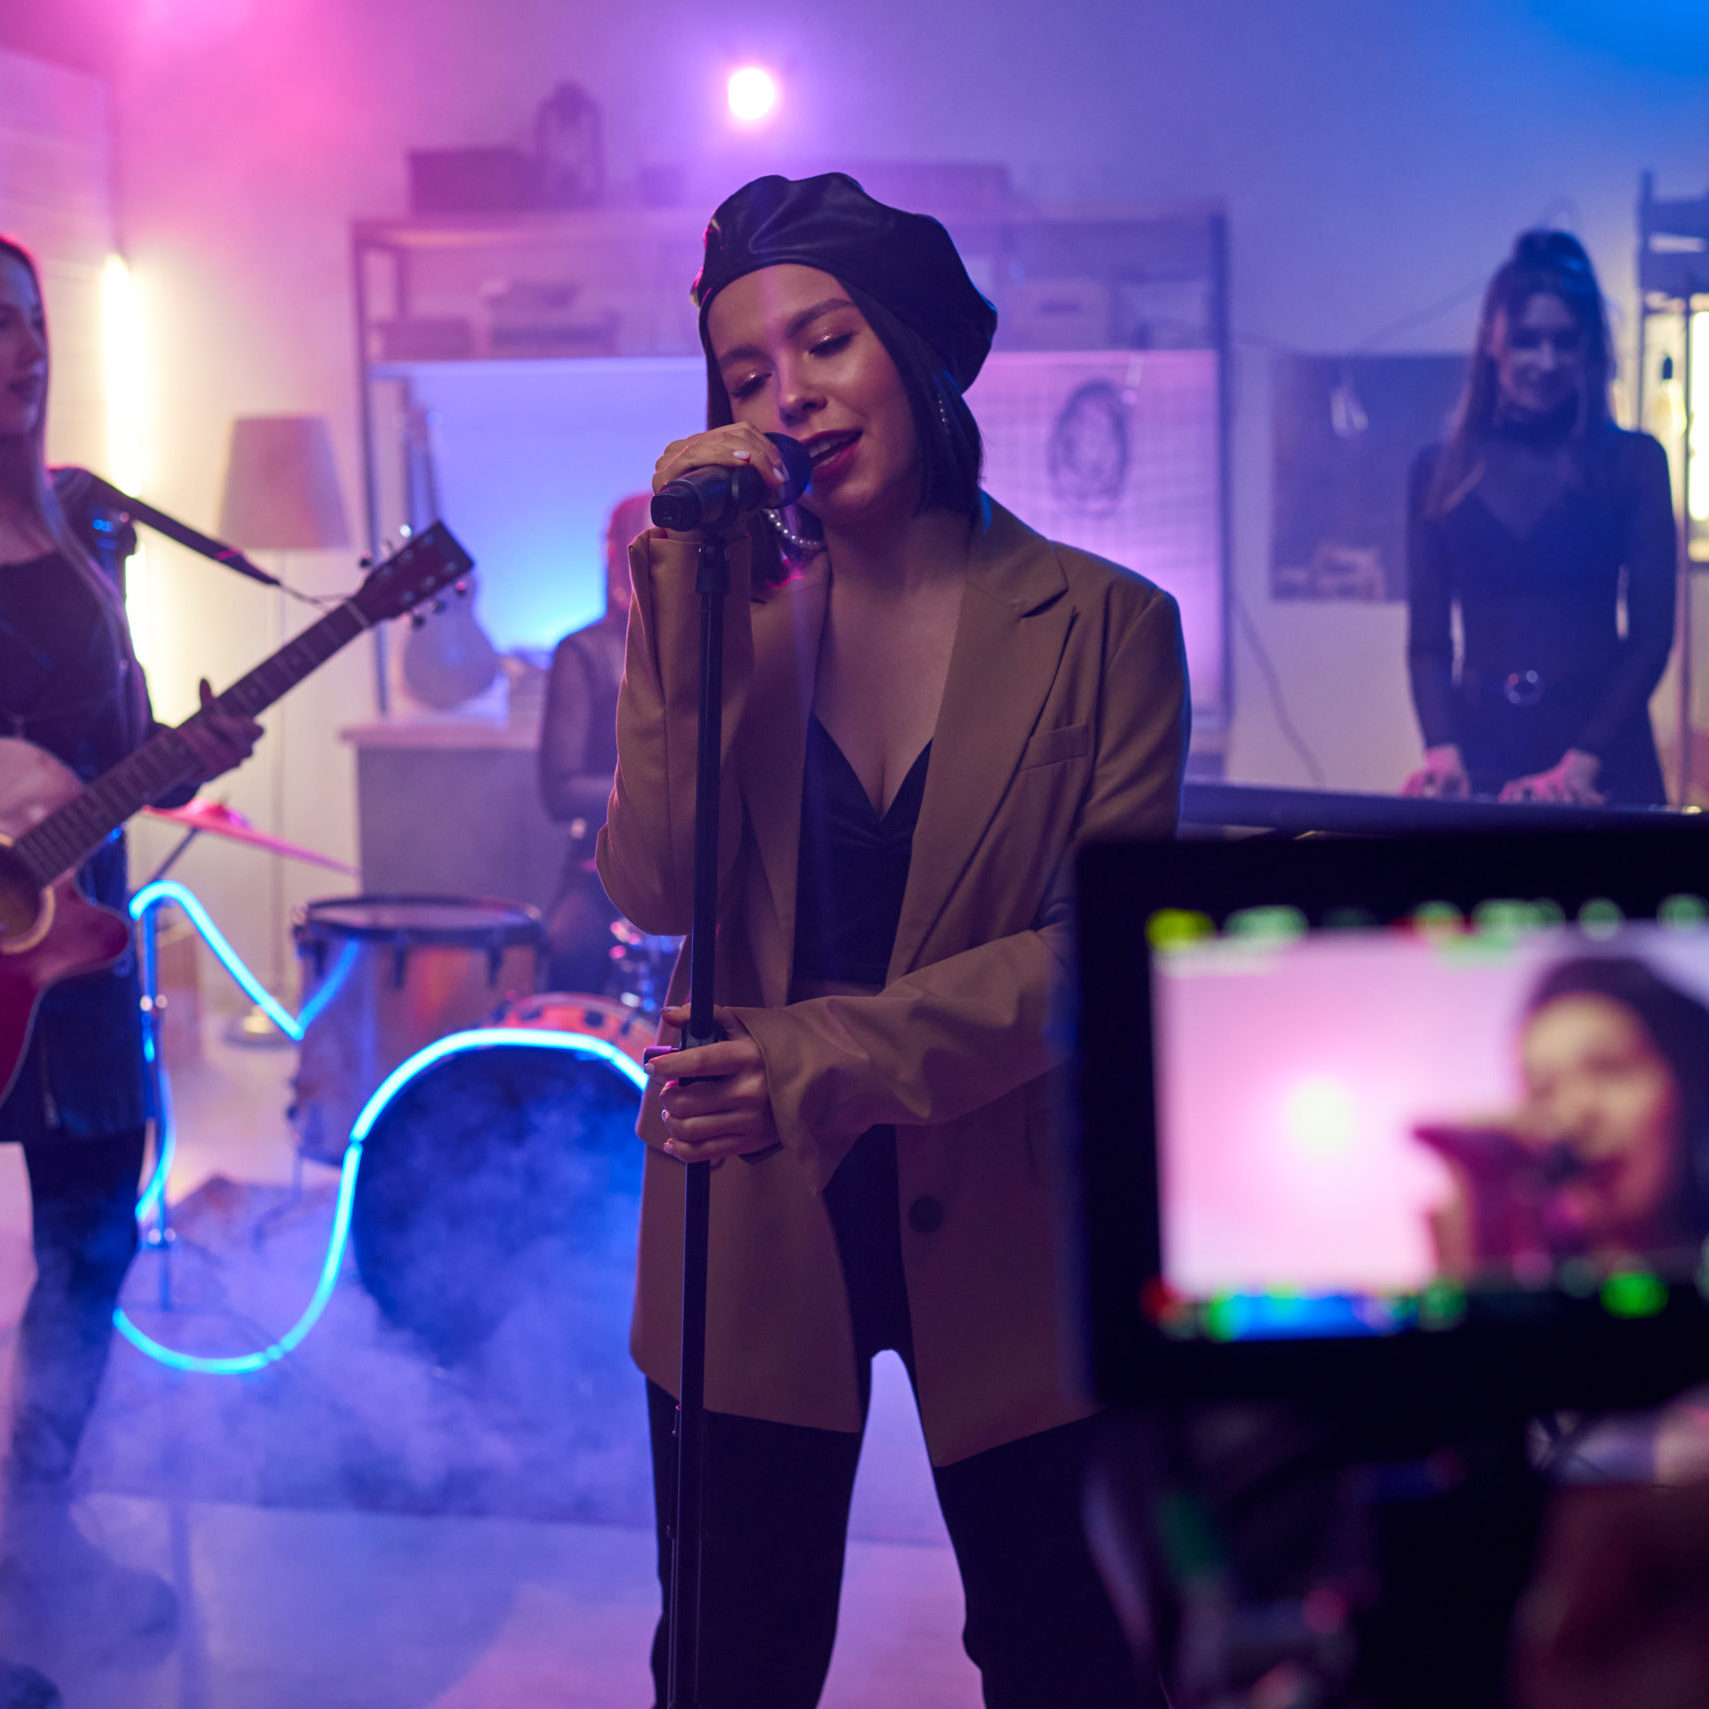 Singer singing in microphone while her group playing on musical instruments they shooting a music video